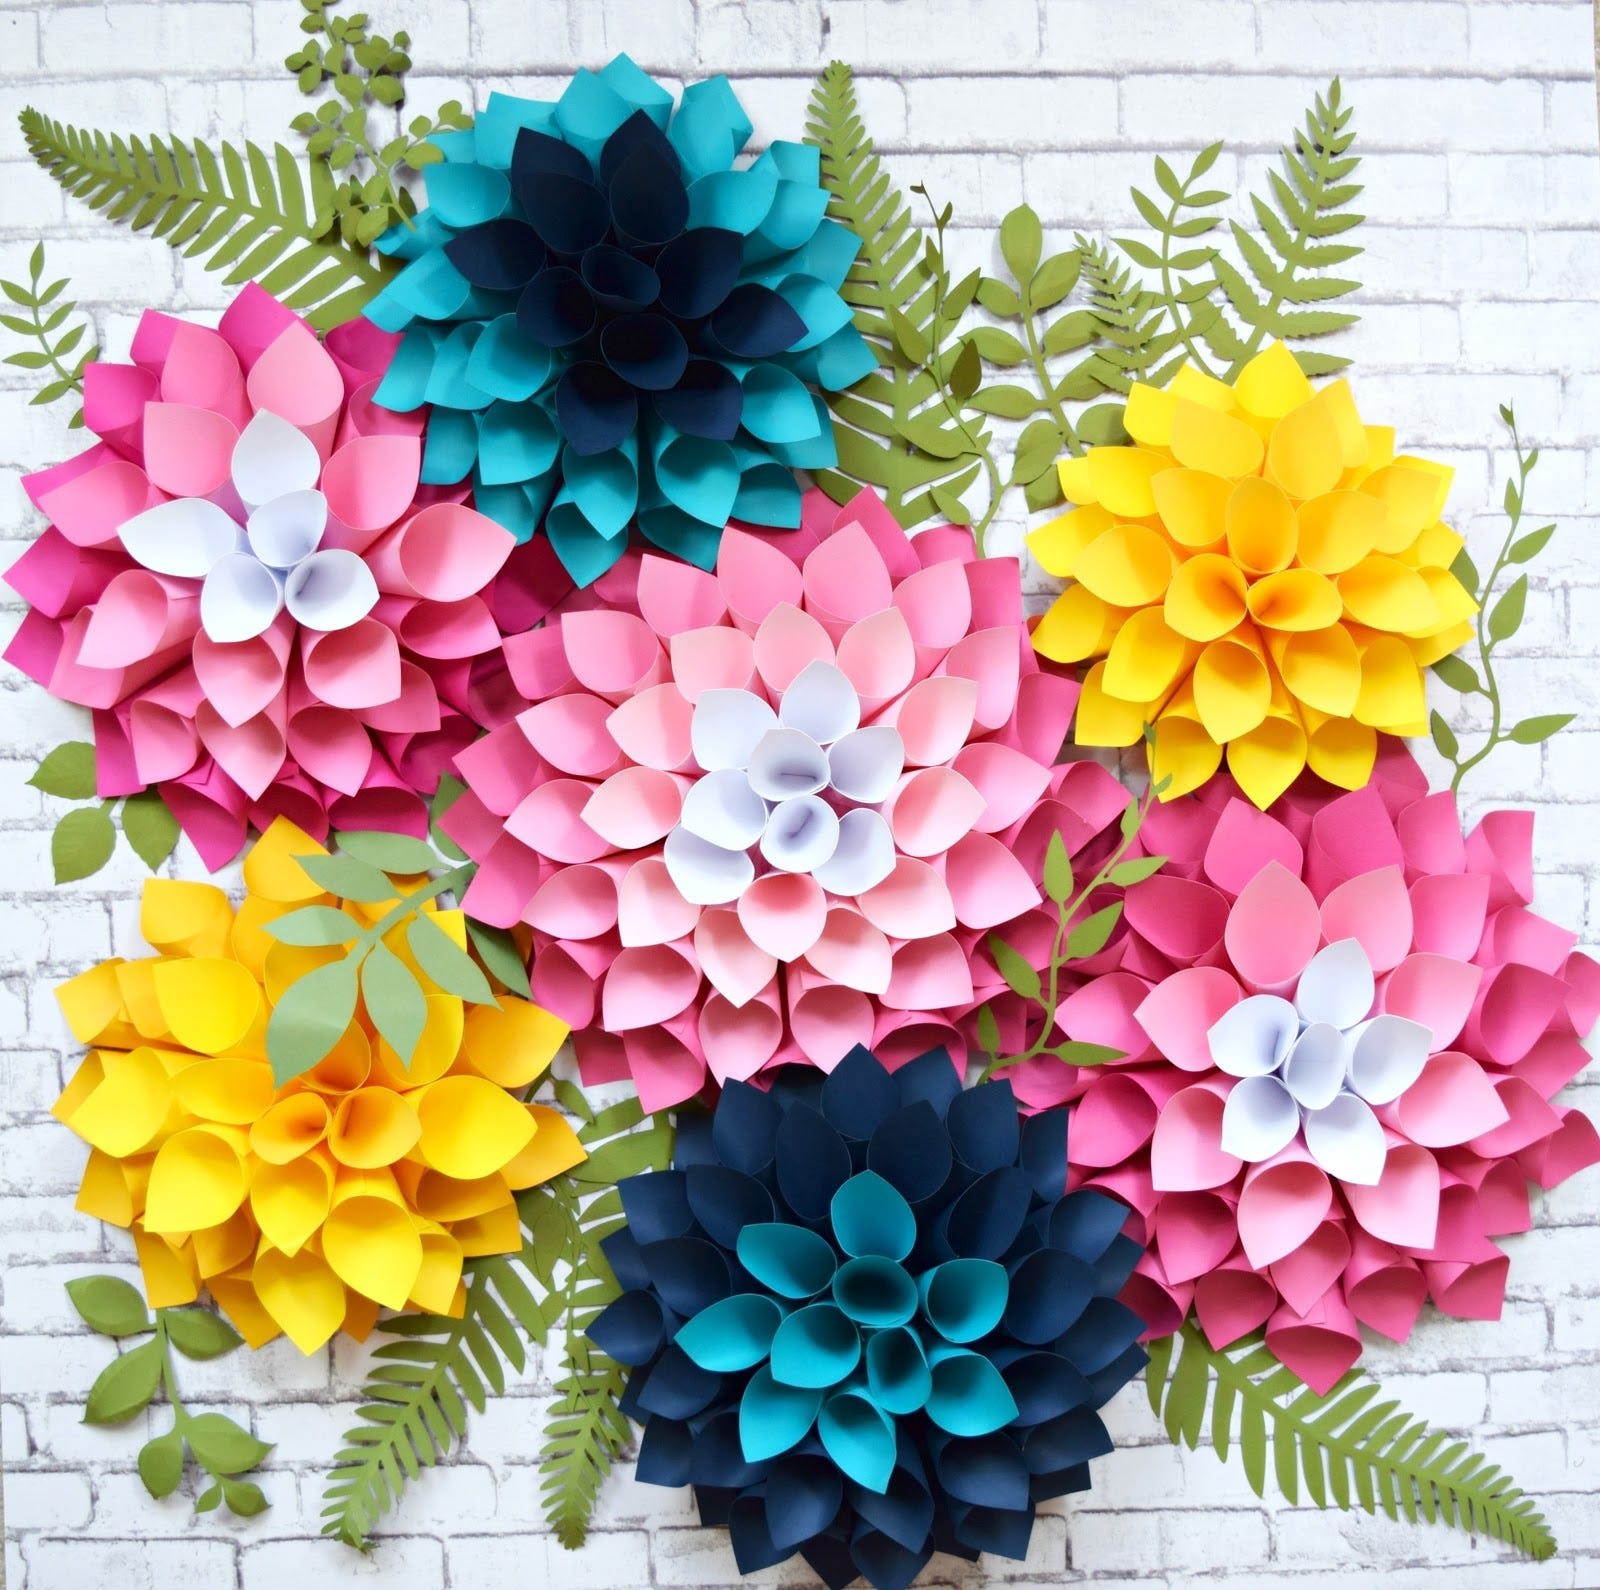 Craft ideas for adults image 1